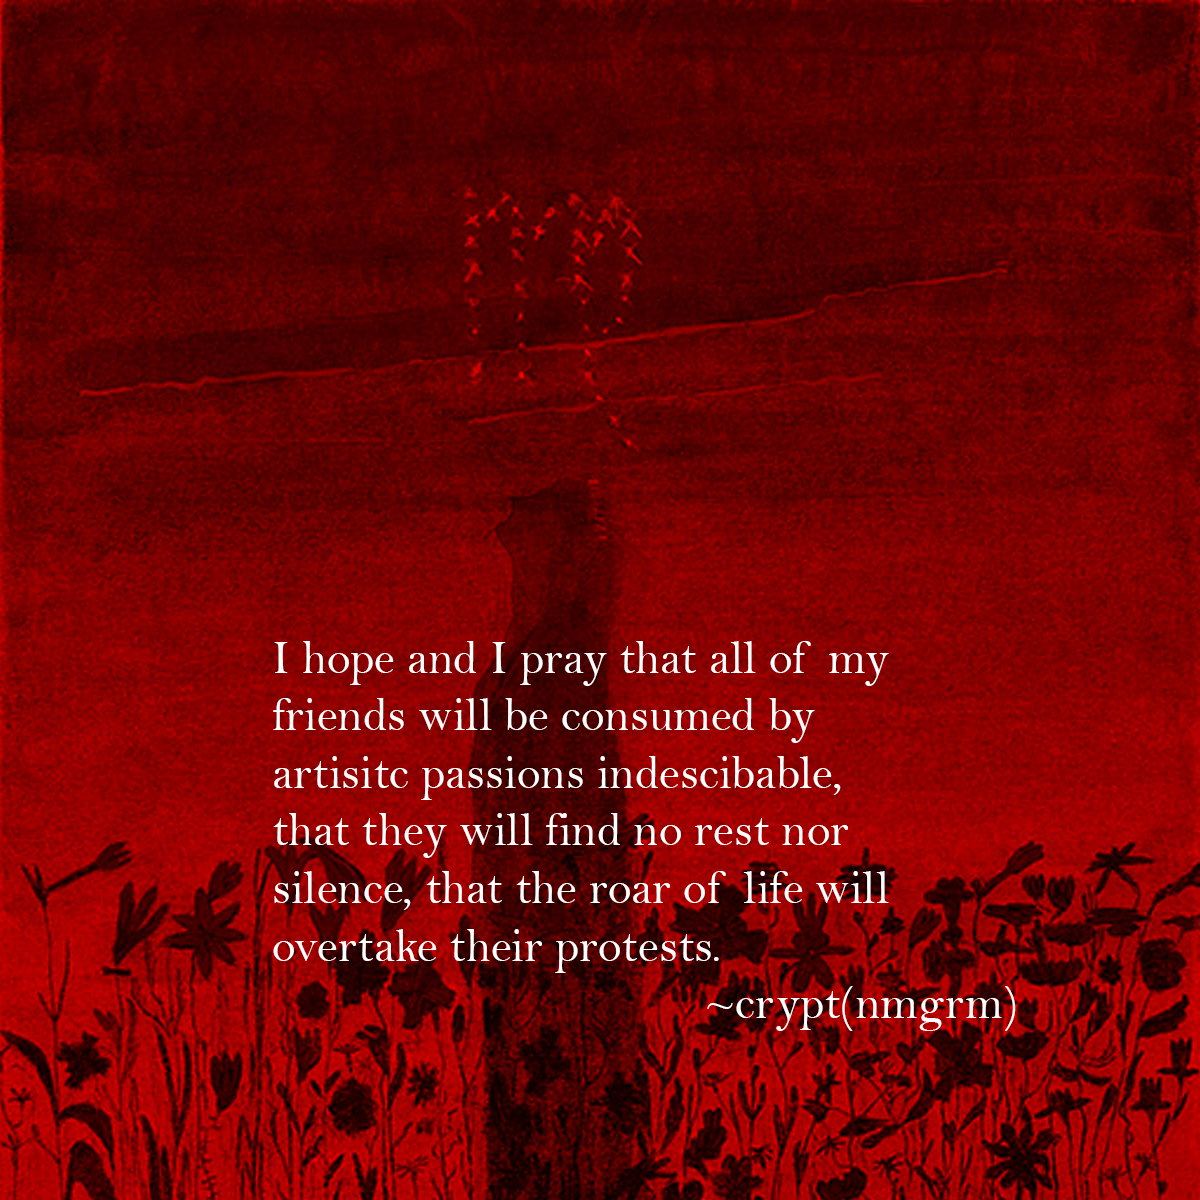 """I hope and I pray that all of my friends will be consumed by artistic passions indescribable, that they will find no rest nor silence, that the roar of life will overtake all their protests."" ~crypt(@nmgrm) [1200X1200]"